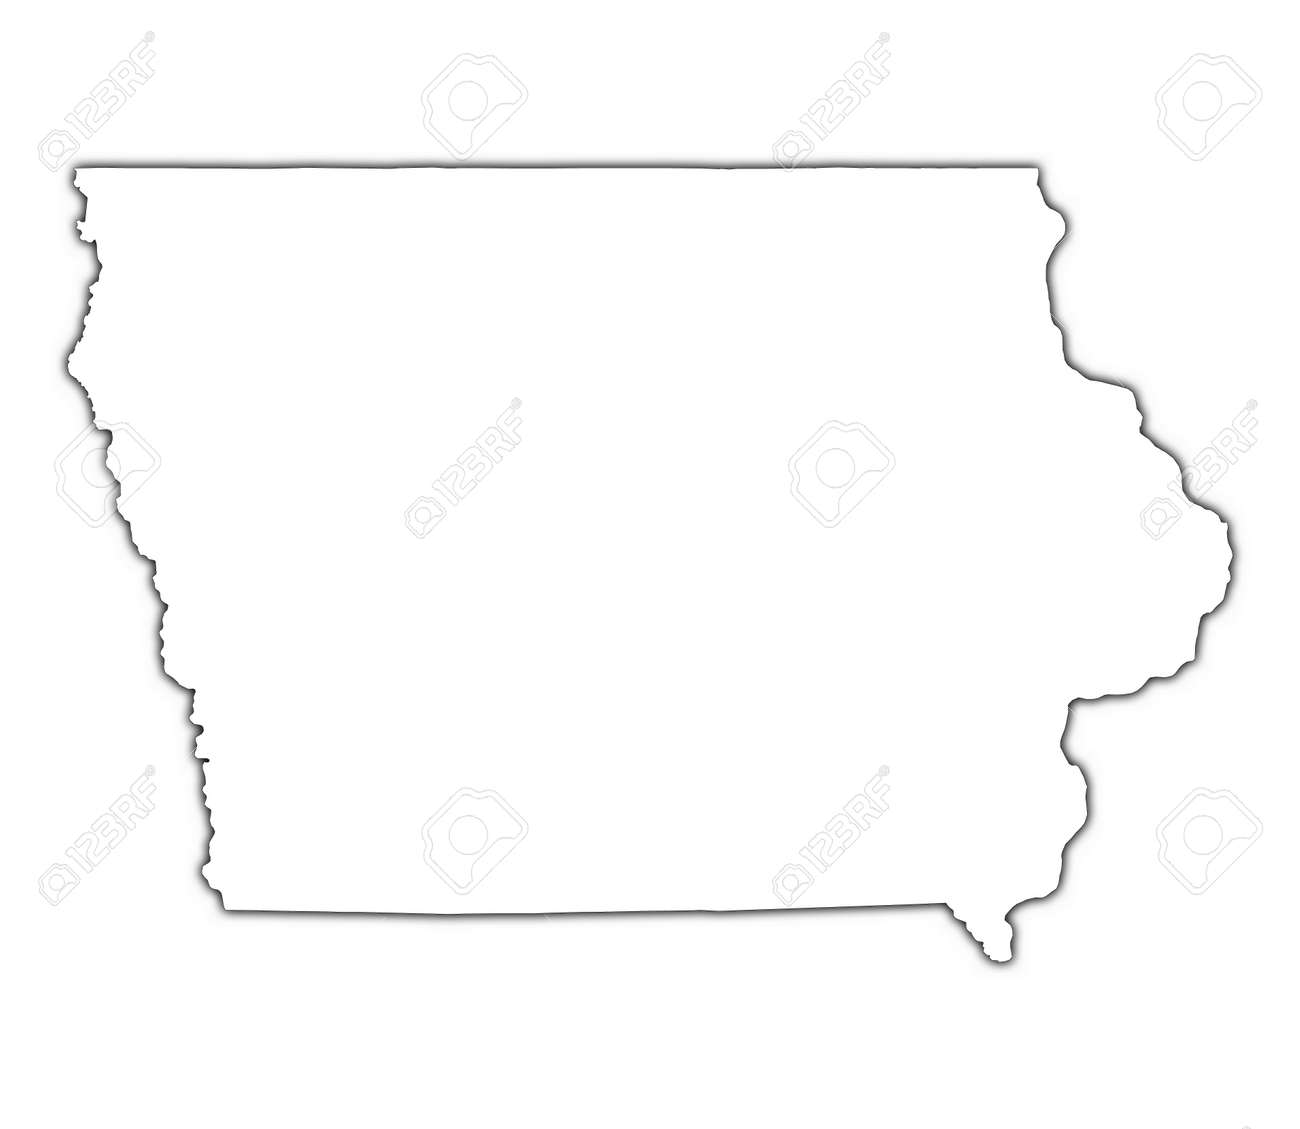 Iowa USA Outline Map With Shadow Detailed Mercator Projection - Iowa usa map